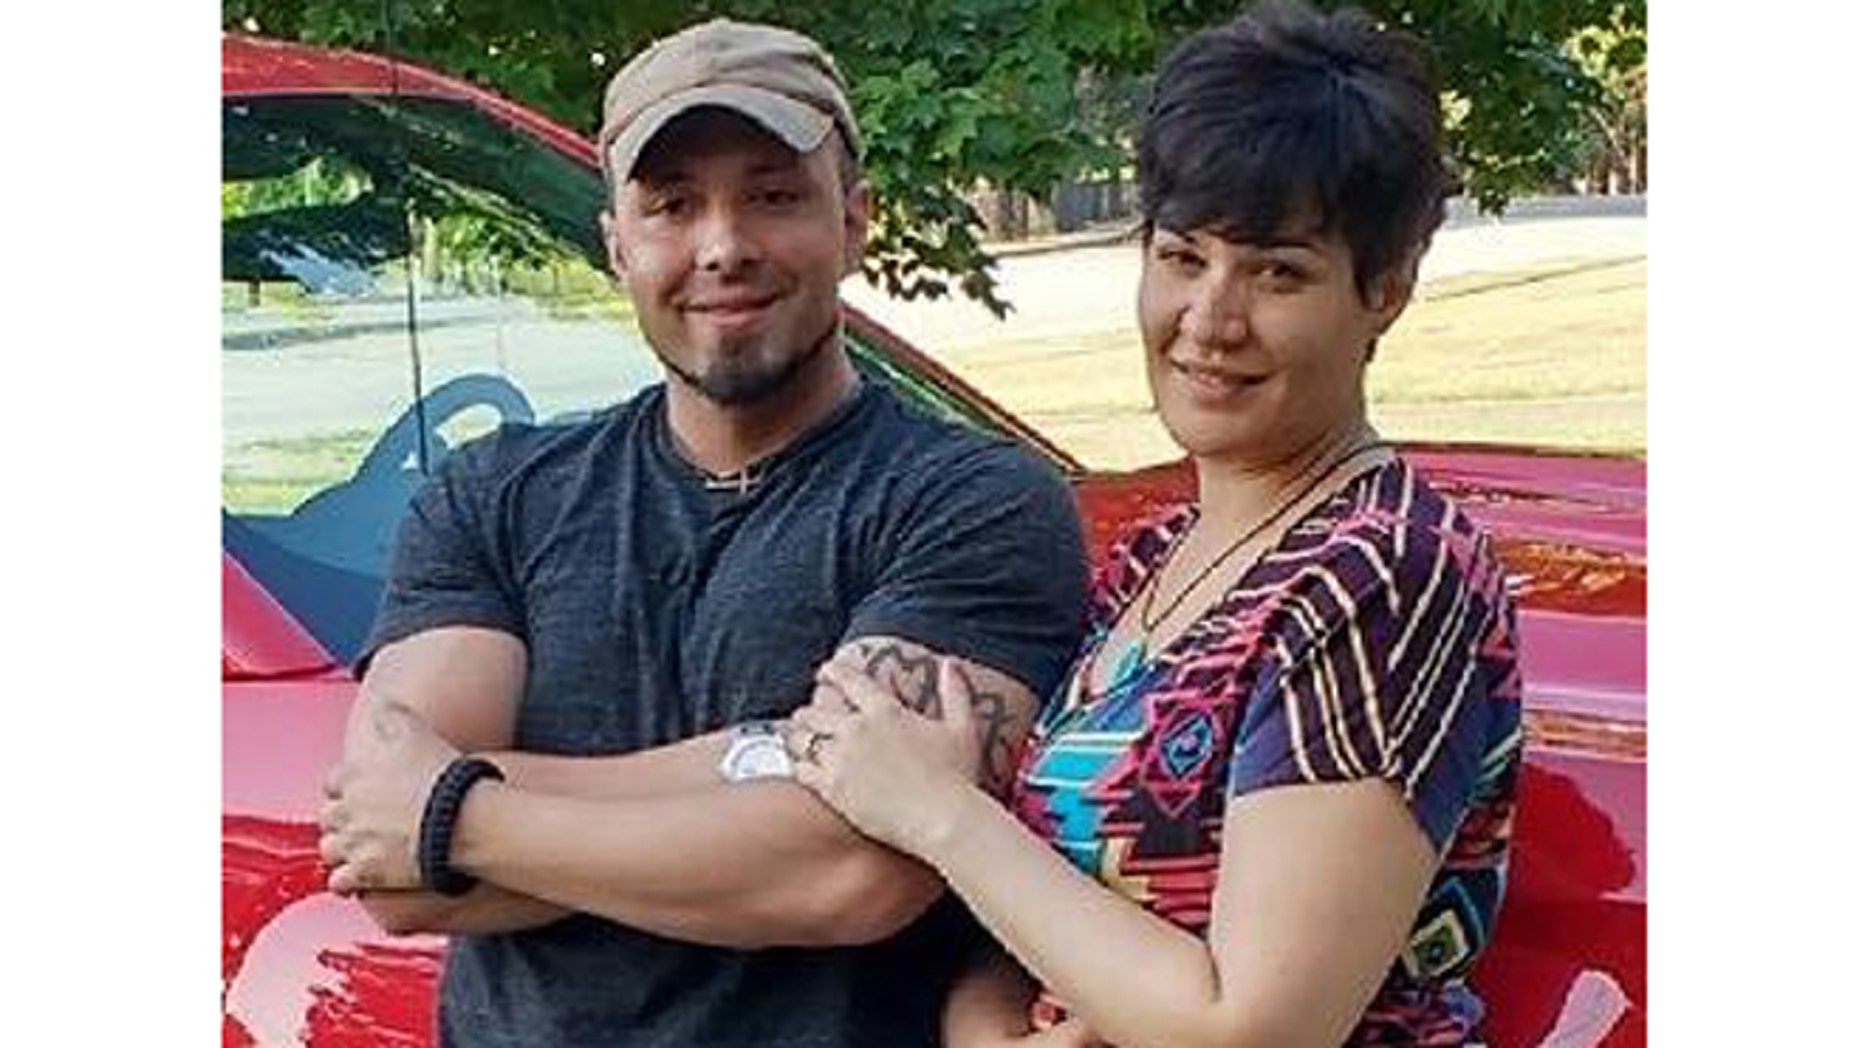 Valerie Tieman, right, is seen with her husband in photo taken in July. (Maine State Police)